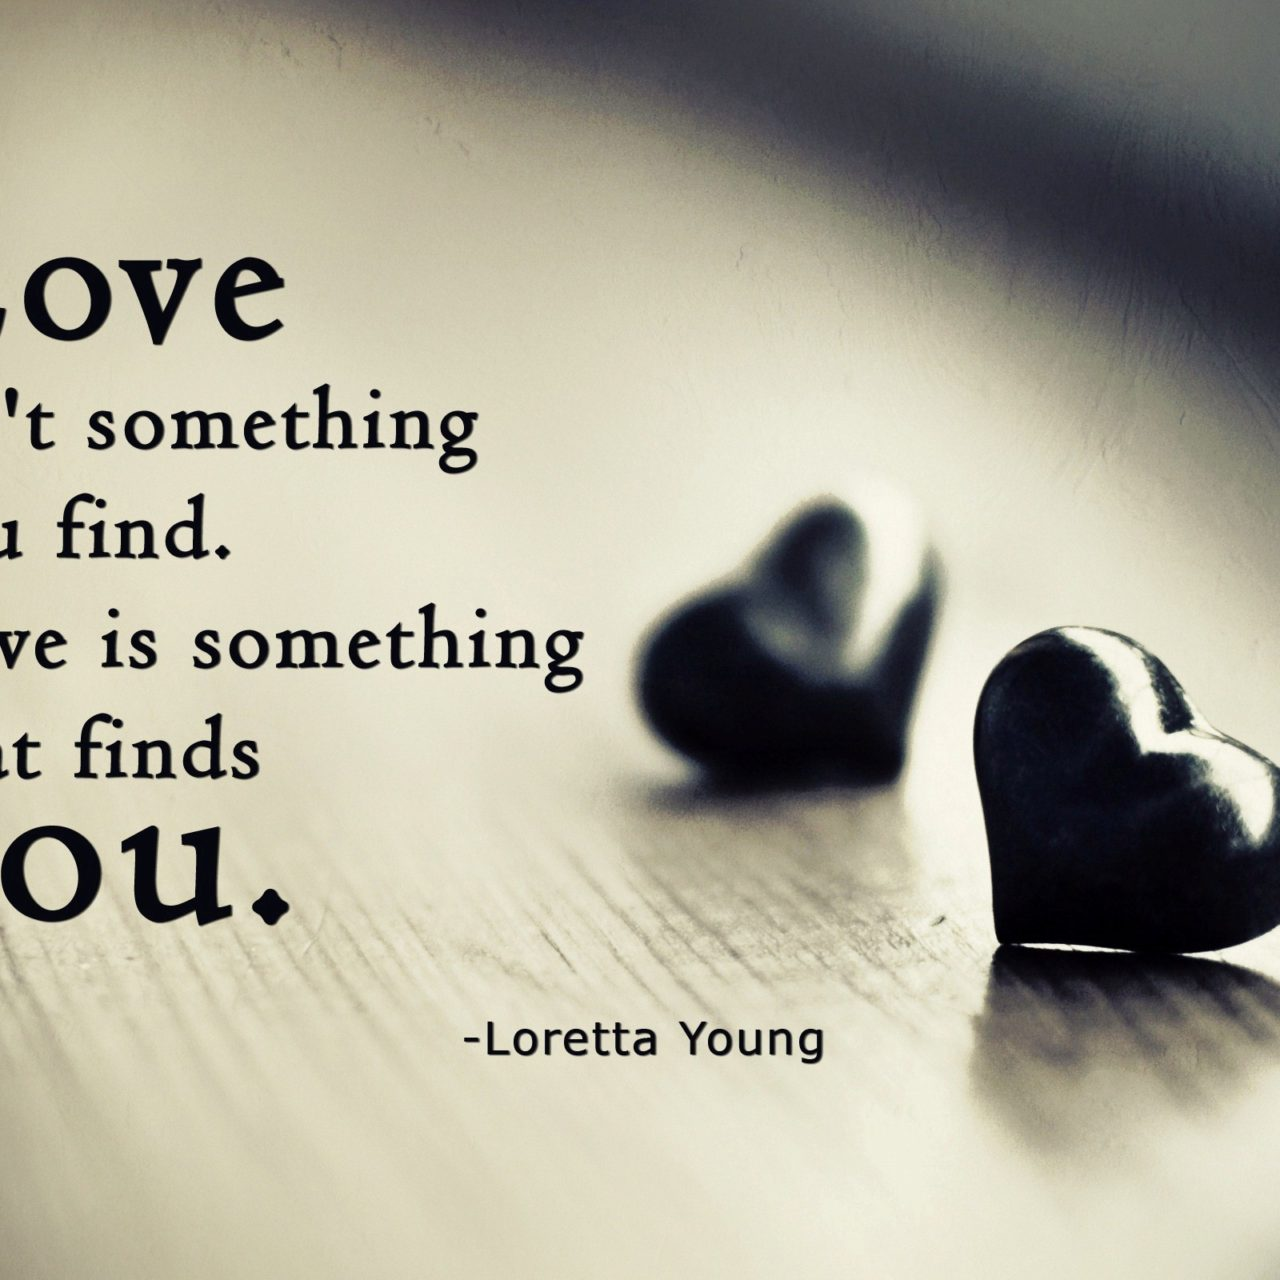 Beautiful Love Quotes Wallpaper Hd : love wallpapers with quotes quotesgram. pics photos love you quotes 2013 hd wallpaper i love you ...